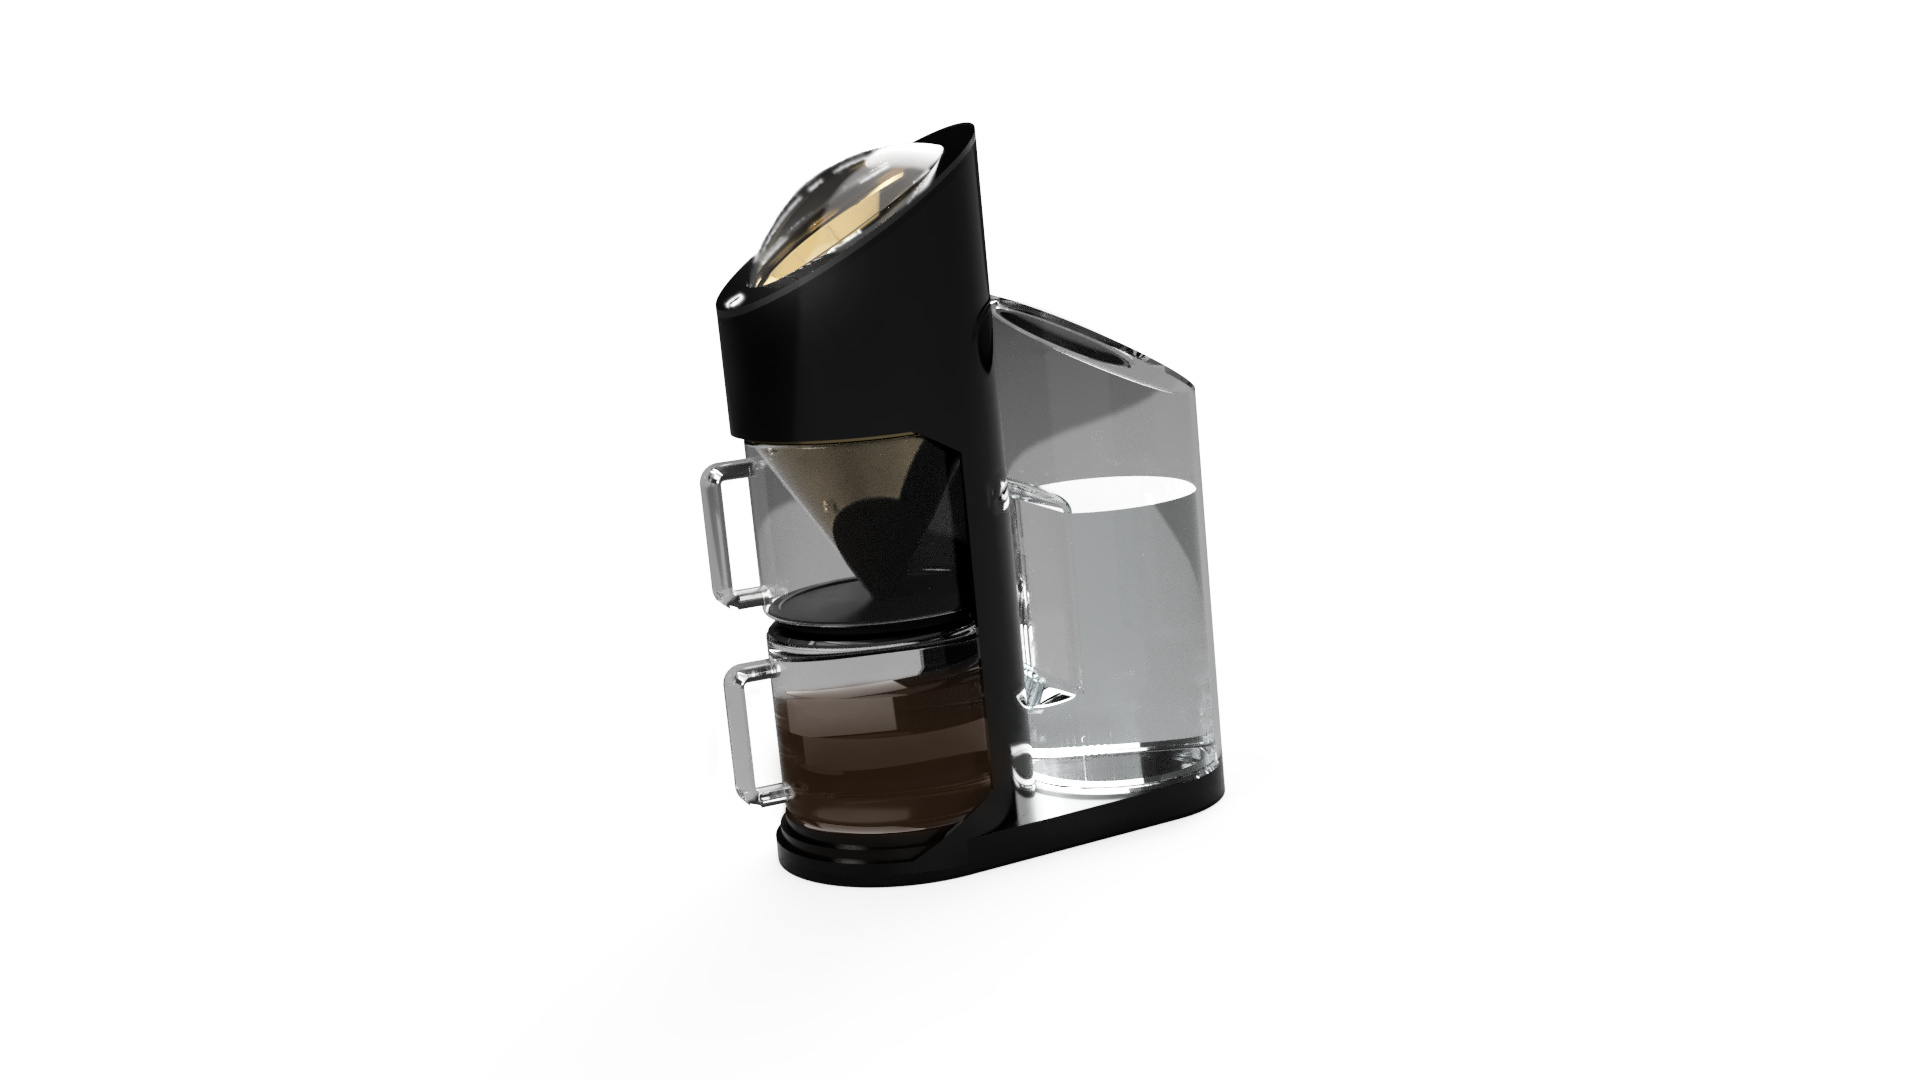 gemini grind + brew is designed to capture the ritual and quality of making pourover coffee in a more automated, precise process